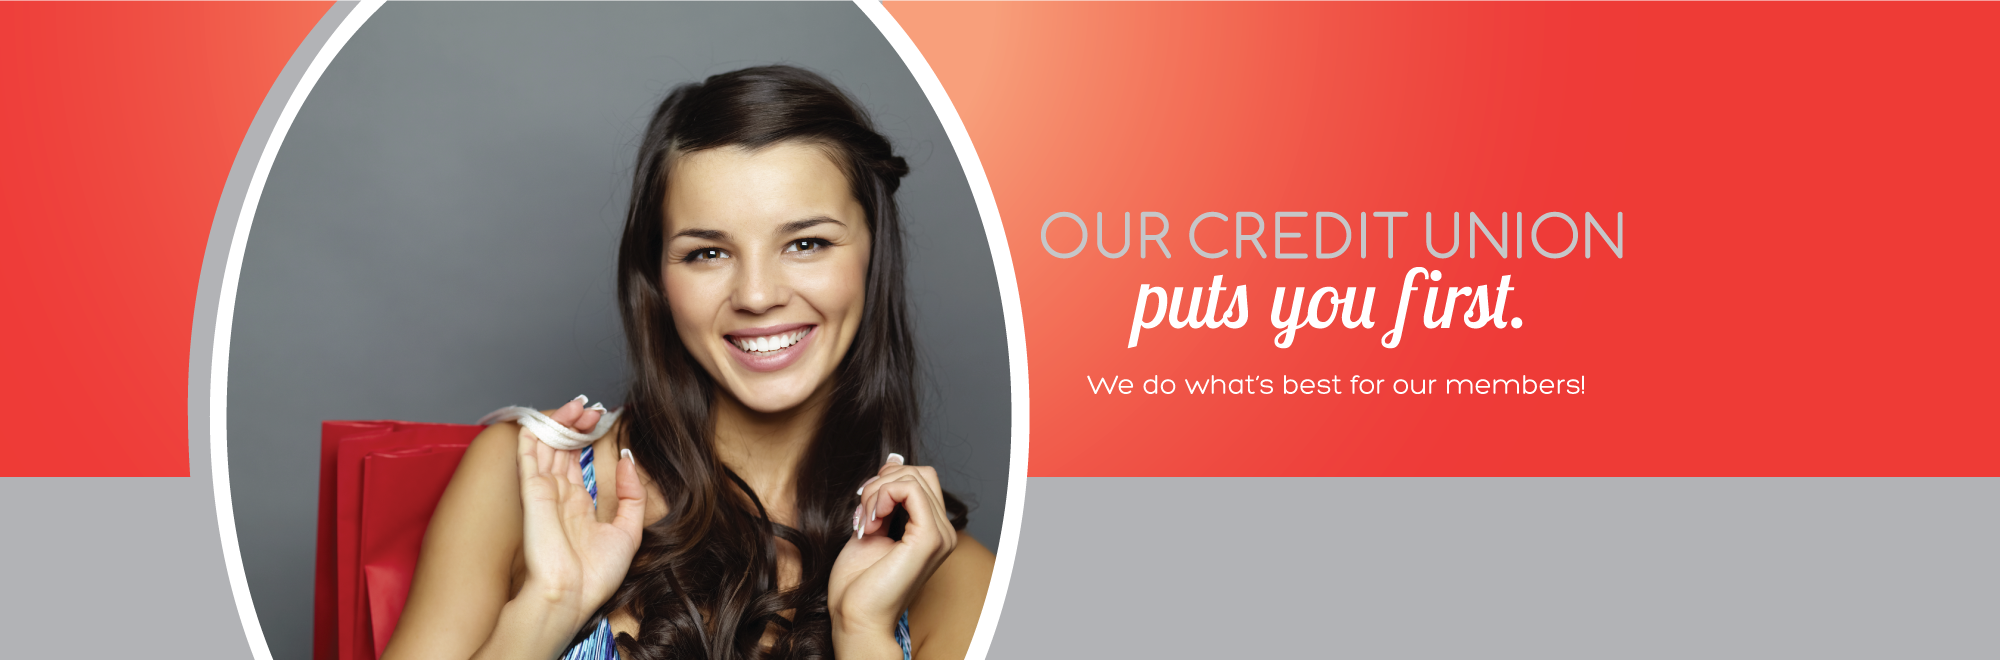 Our credit union puts you first. We do what's best for our members